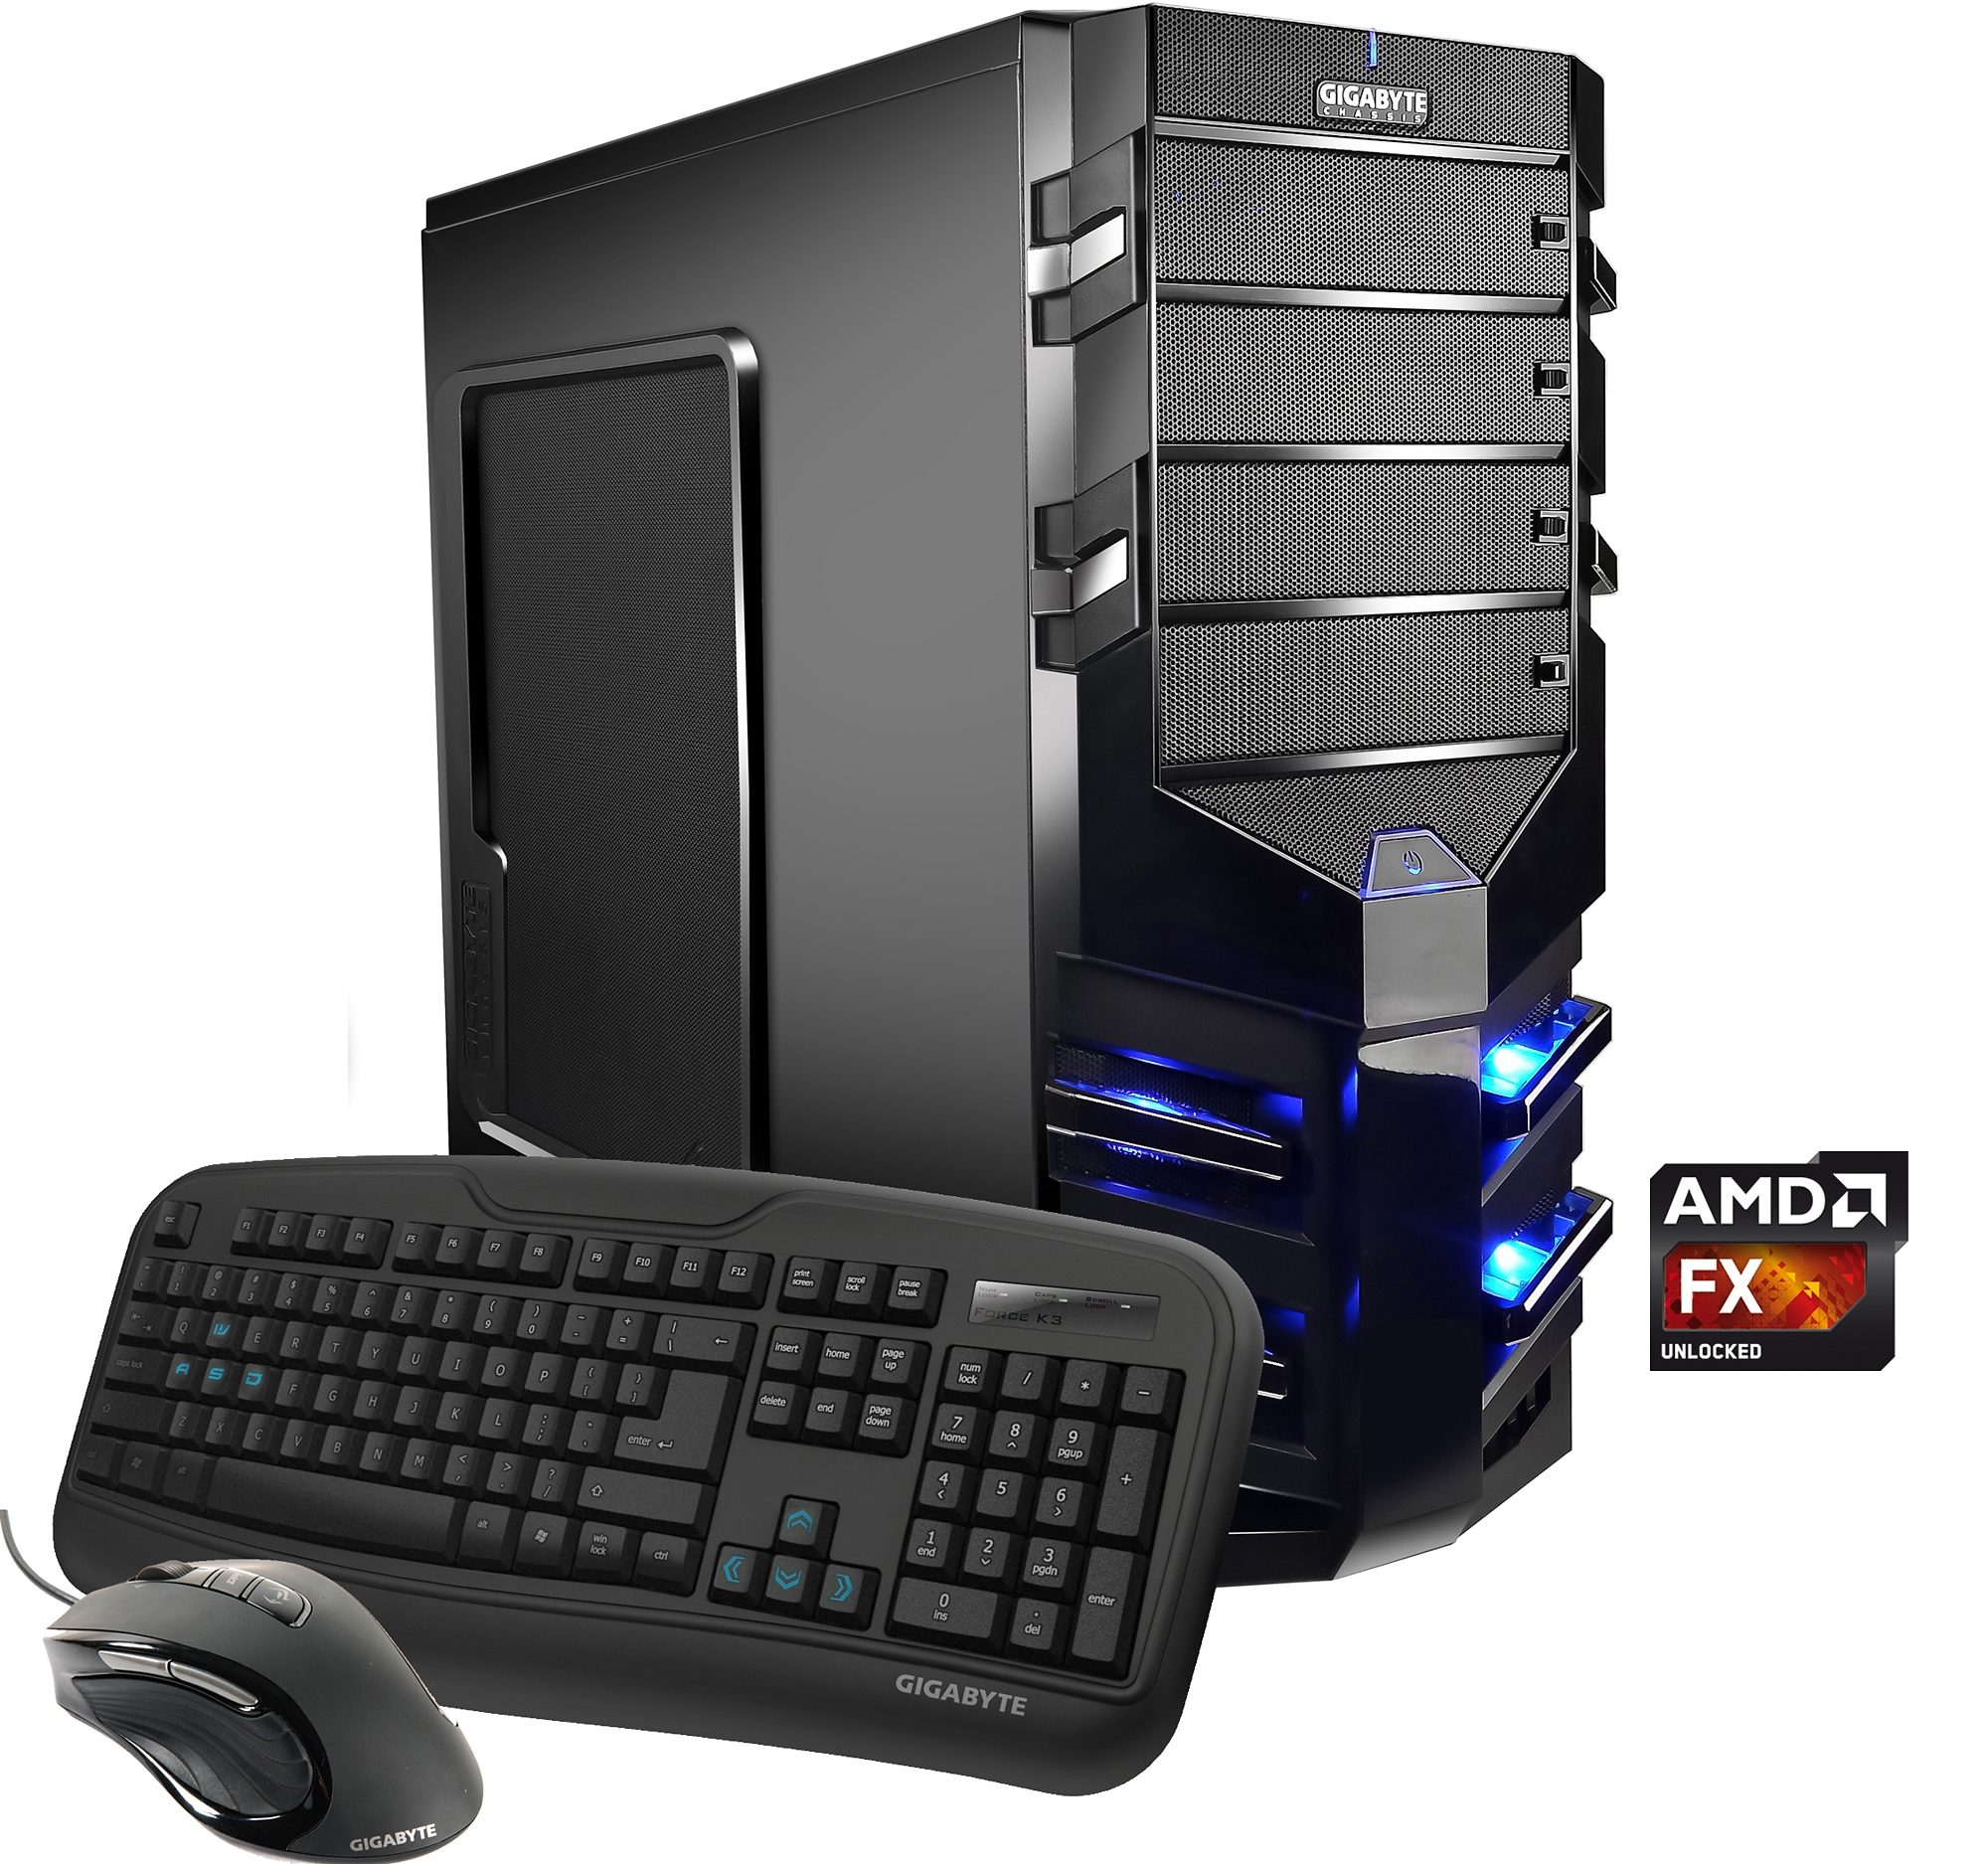 Hyrican Gaming PC AMD FX-4300, 8GB, 1TB, R7 360, Windows 10 »Alpha Gaming 4878«